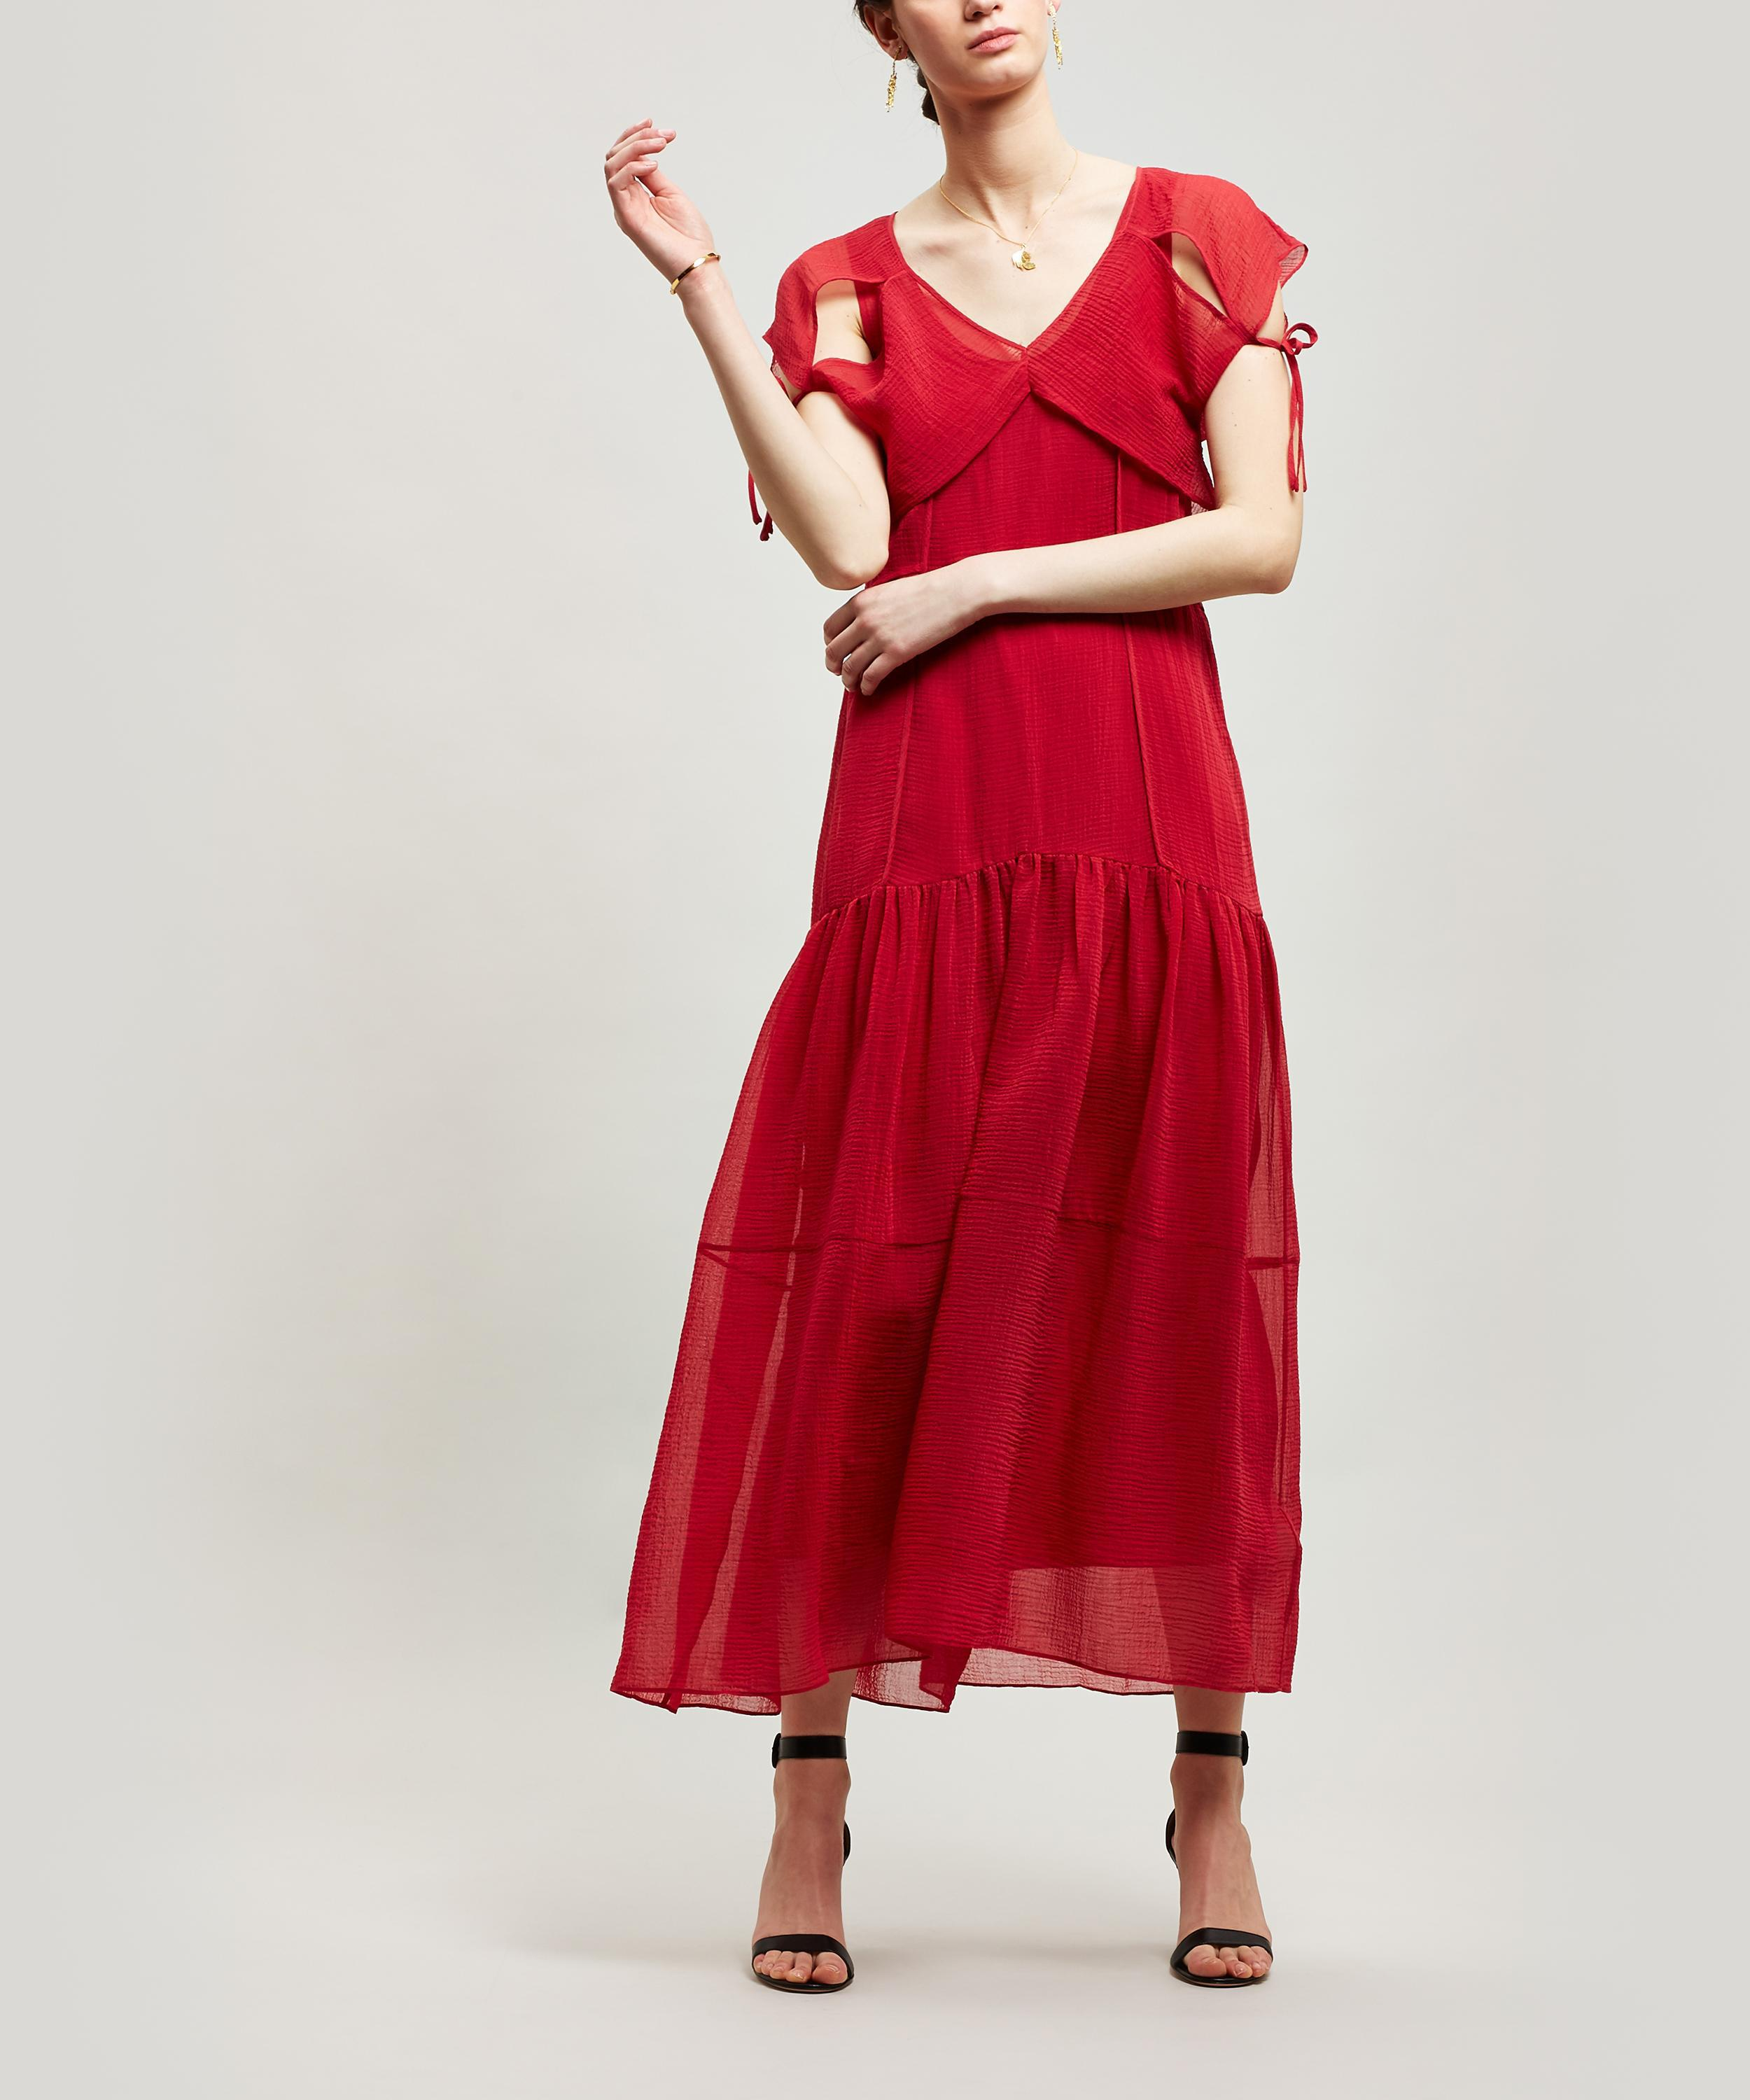 ee1236a4669 3.1 Phillip Lim Textured Silk Maxi-dress in Red - Lyst